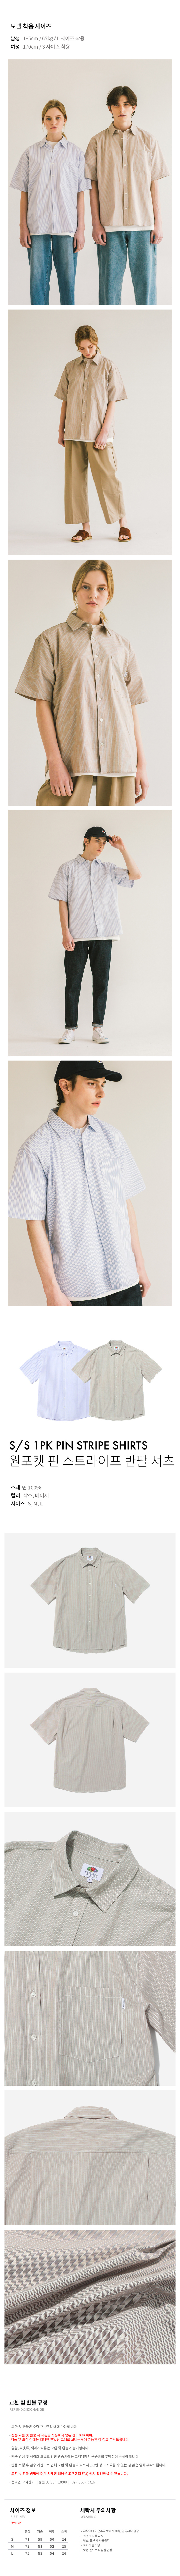 프룻오브더룸(FRUIT OF THE LOOM) S/S 1PK PIN STRIPE SHIRTS BEIGE